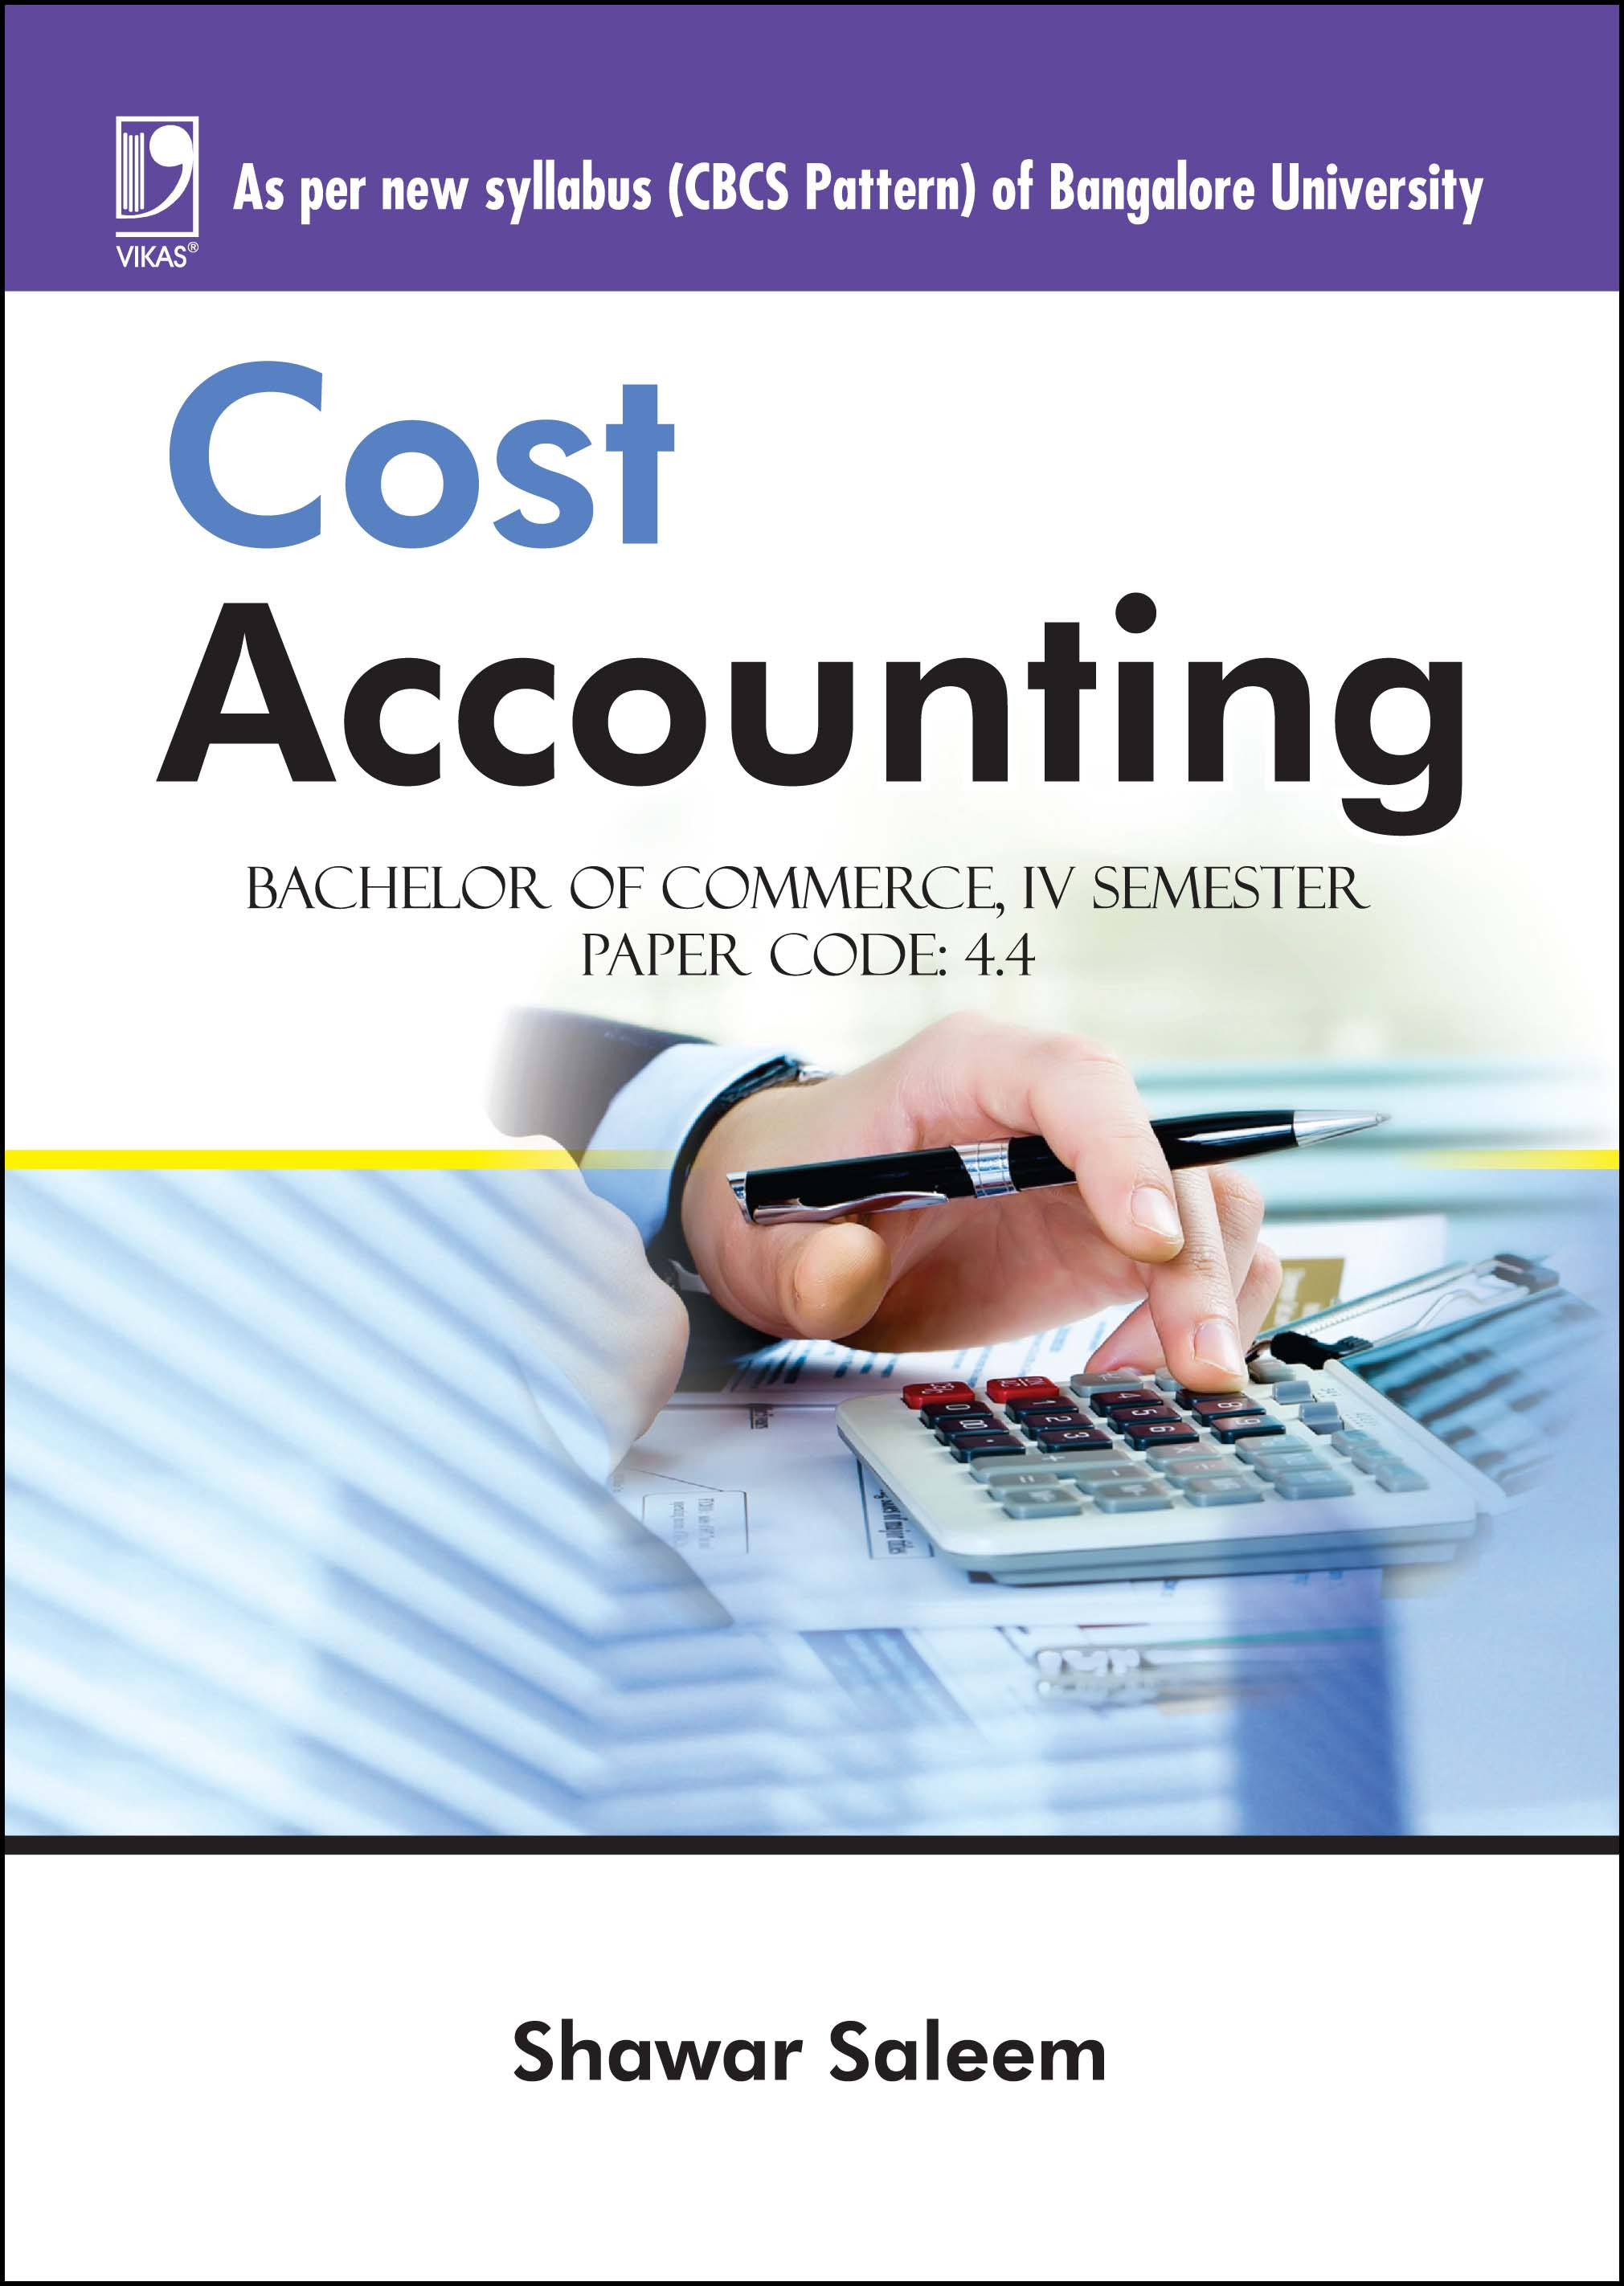 COST ACCOUNTING (FOR BANGALORE UNIVERSITY)